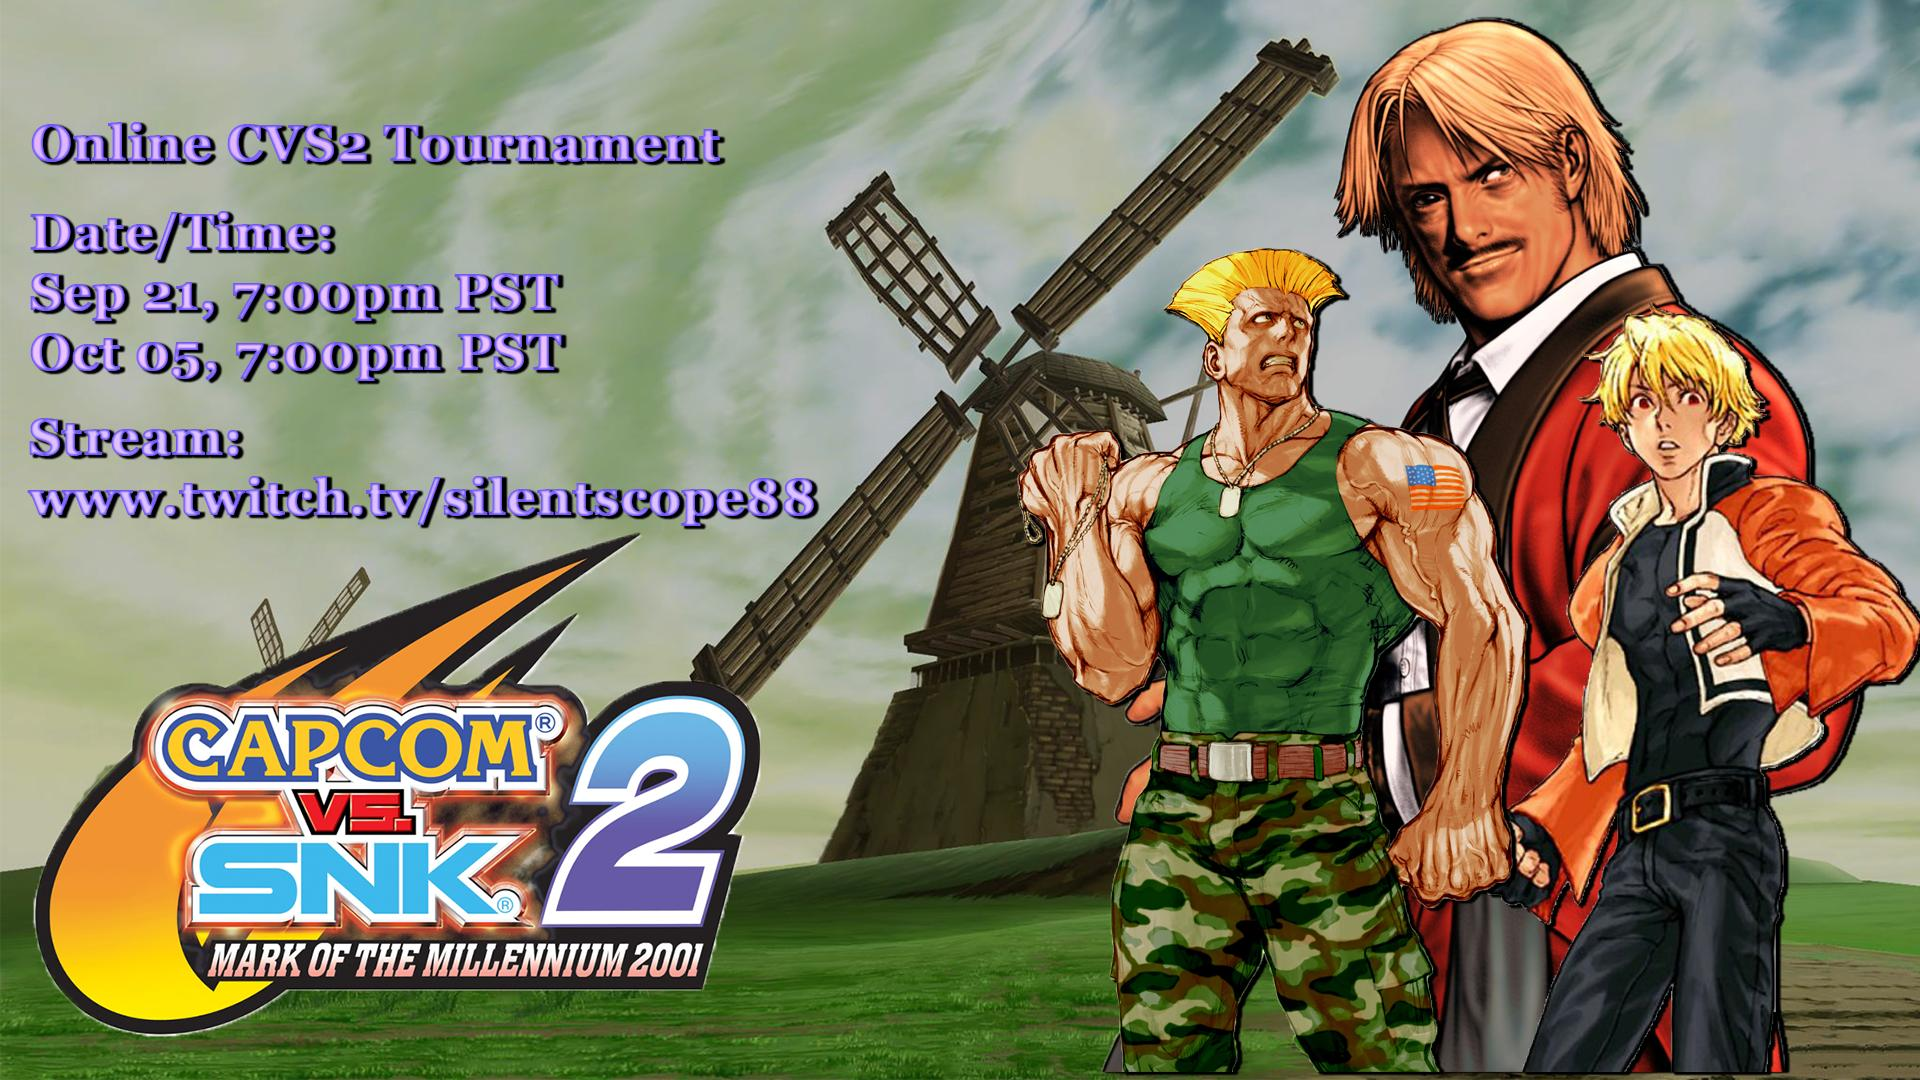 Silentscope88 On Twitter Online Cvs2 Tournament To Start In A